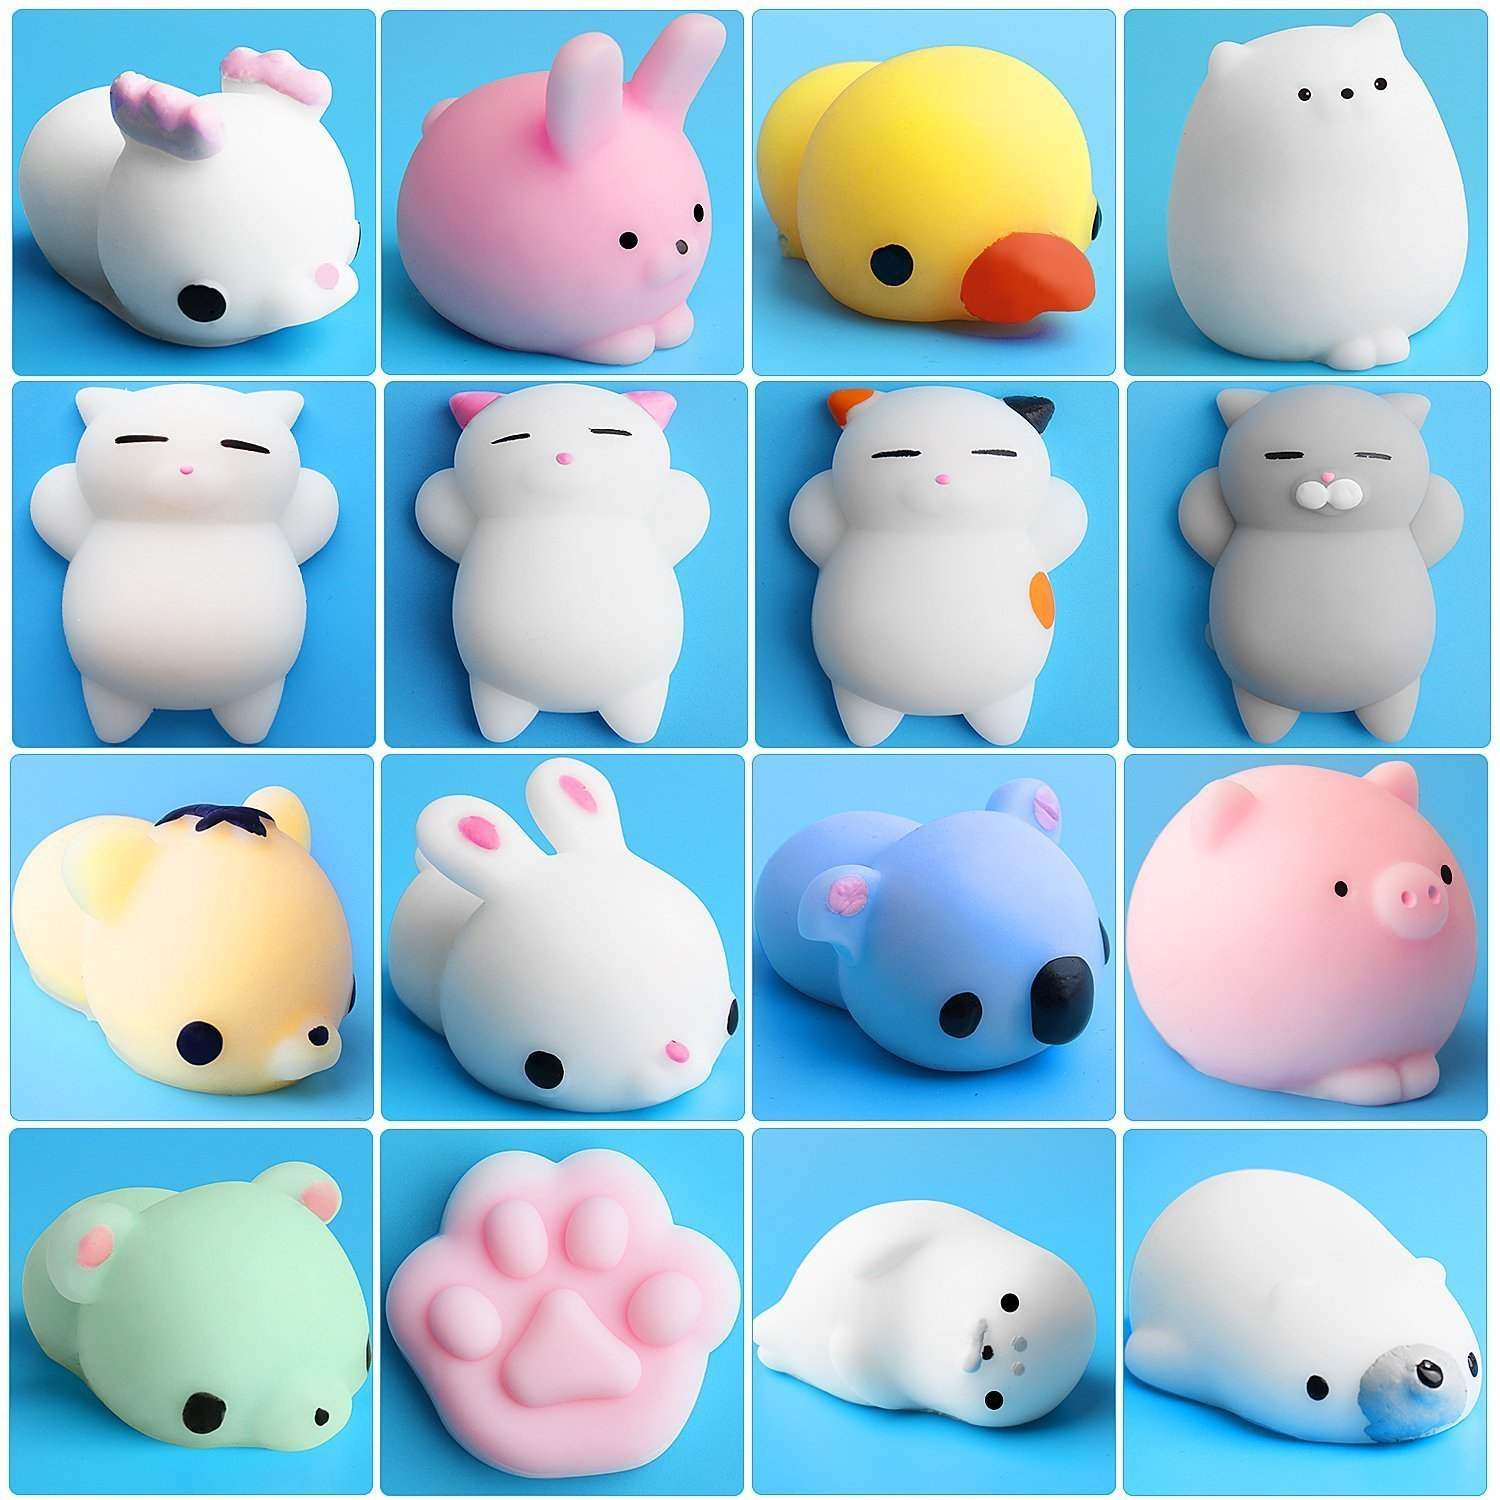 Mochi Squishies Toys, Outee 16 Pcs Squishies Cat Stress Mochi Animals Squishies Toys Stress Relief Squishies Animals Mochi Cat Squishies with Felt Bag